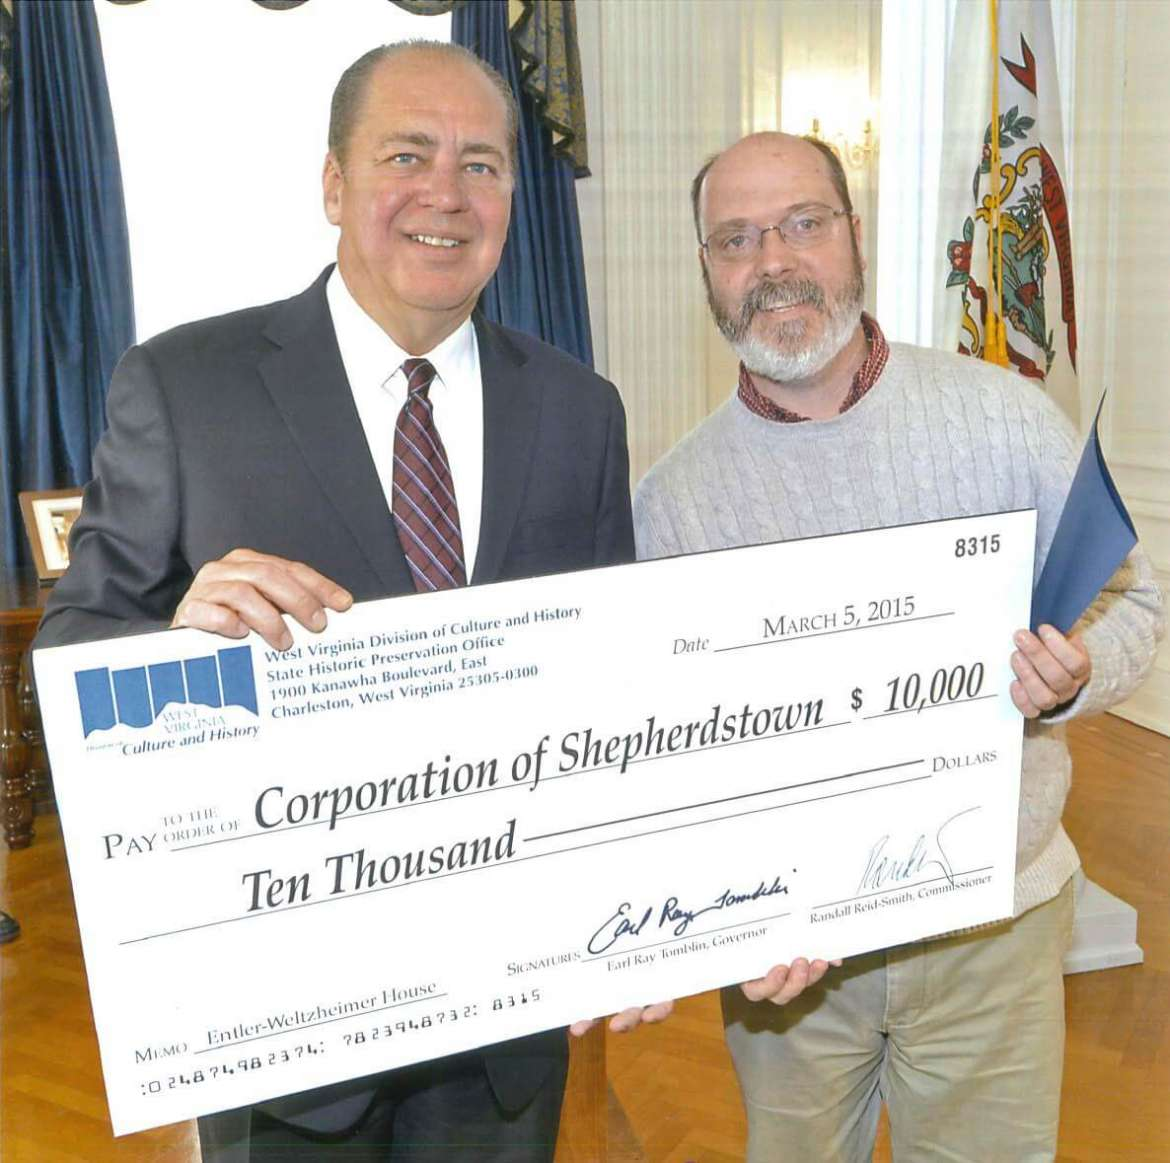 Dr. Keith Alexander, assistant professor of history, receives a check from Gov. Earl Ray Tomblin for a $10,000 survey and planning grant from the West Virginia Division of Culture and History to draw up plans to use the Yellow House as a center for preservation education.